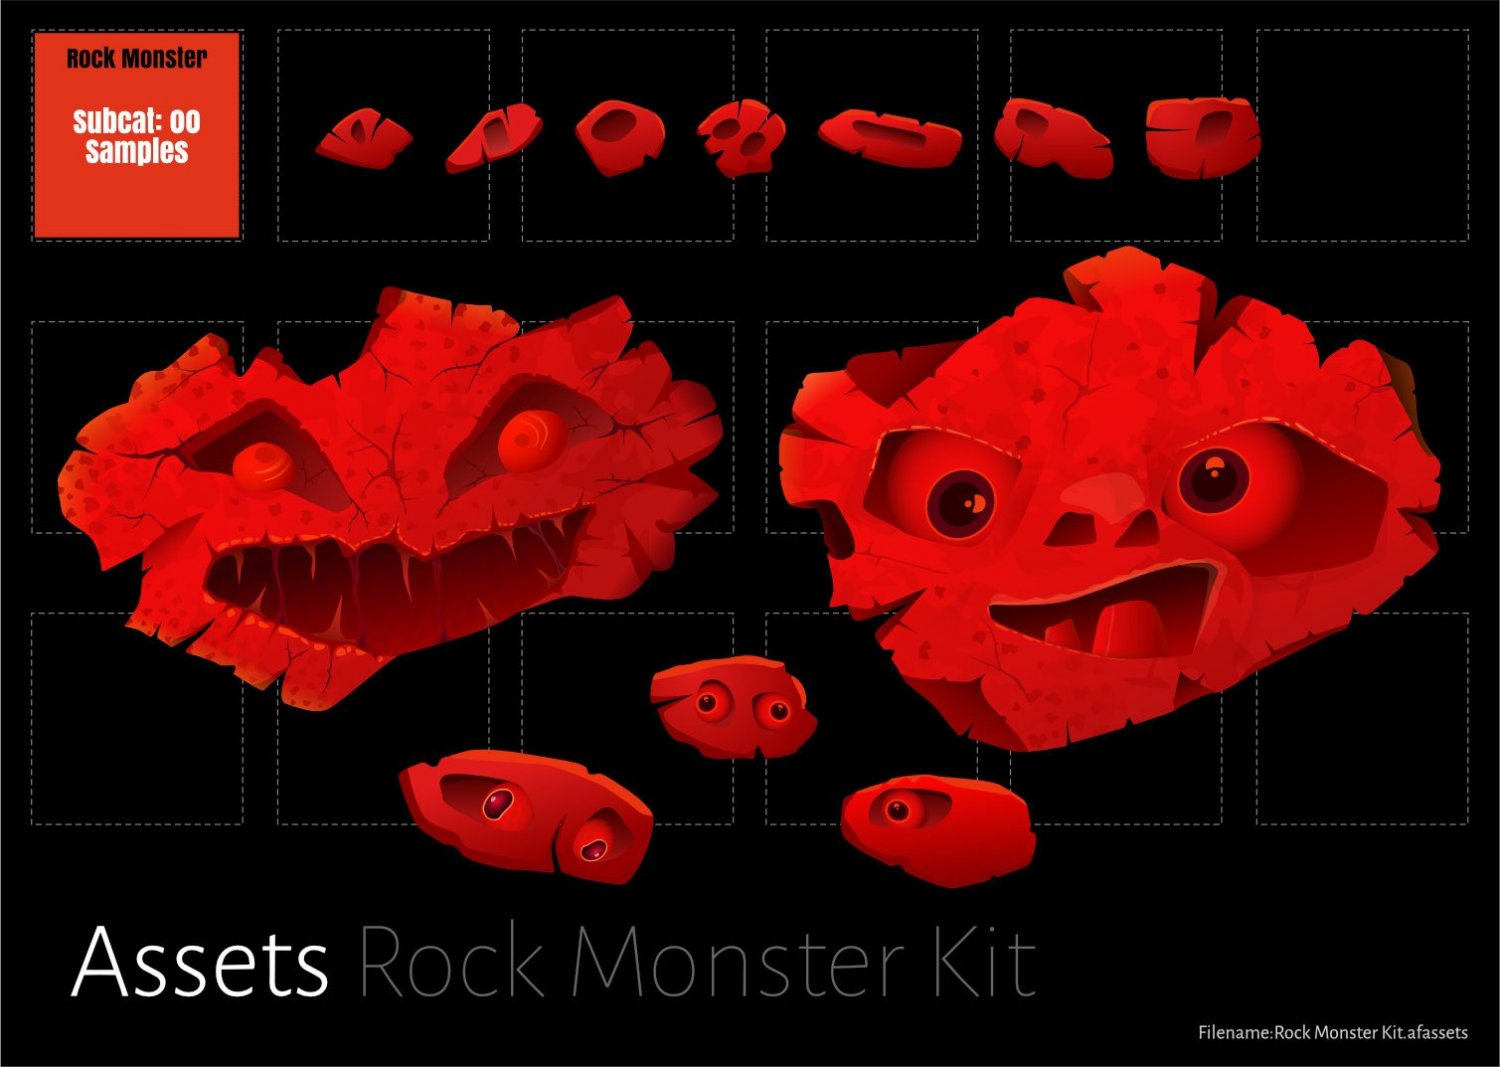 Rock Monster Kit 00@0.3x.jpg